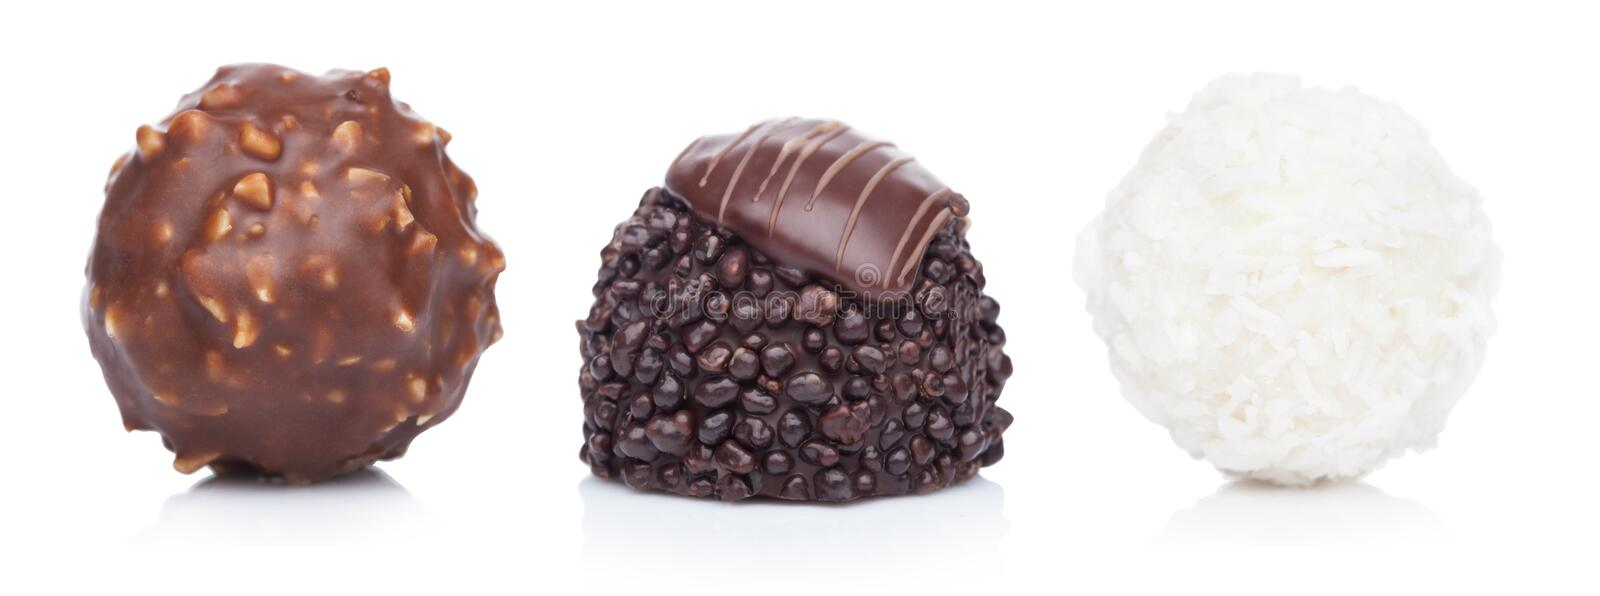 Luxury chocolate candies with hazelnuts and white cream with coconut flake round candies and dark chocolate candy on white royalty free stock photo